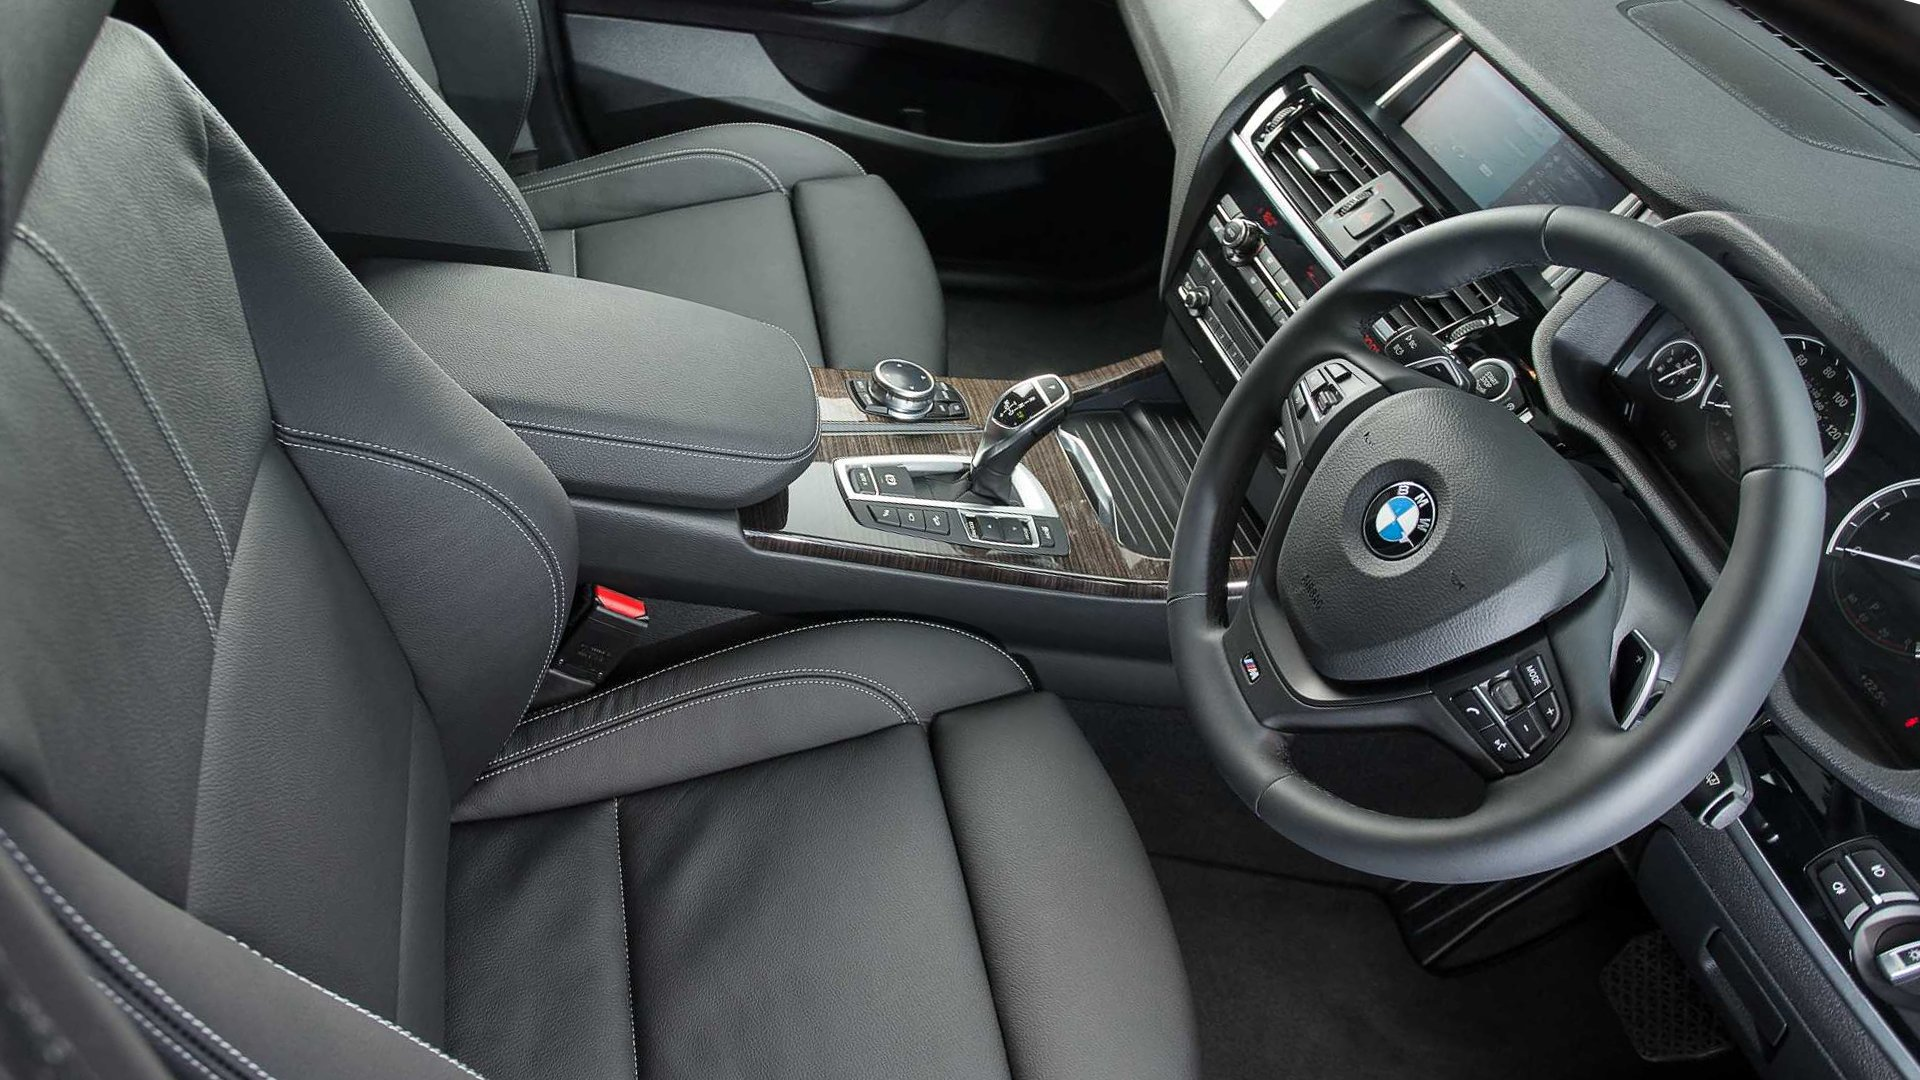 New 2019 BMW X4 Interior Design